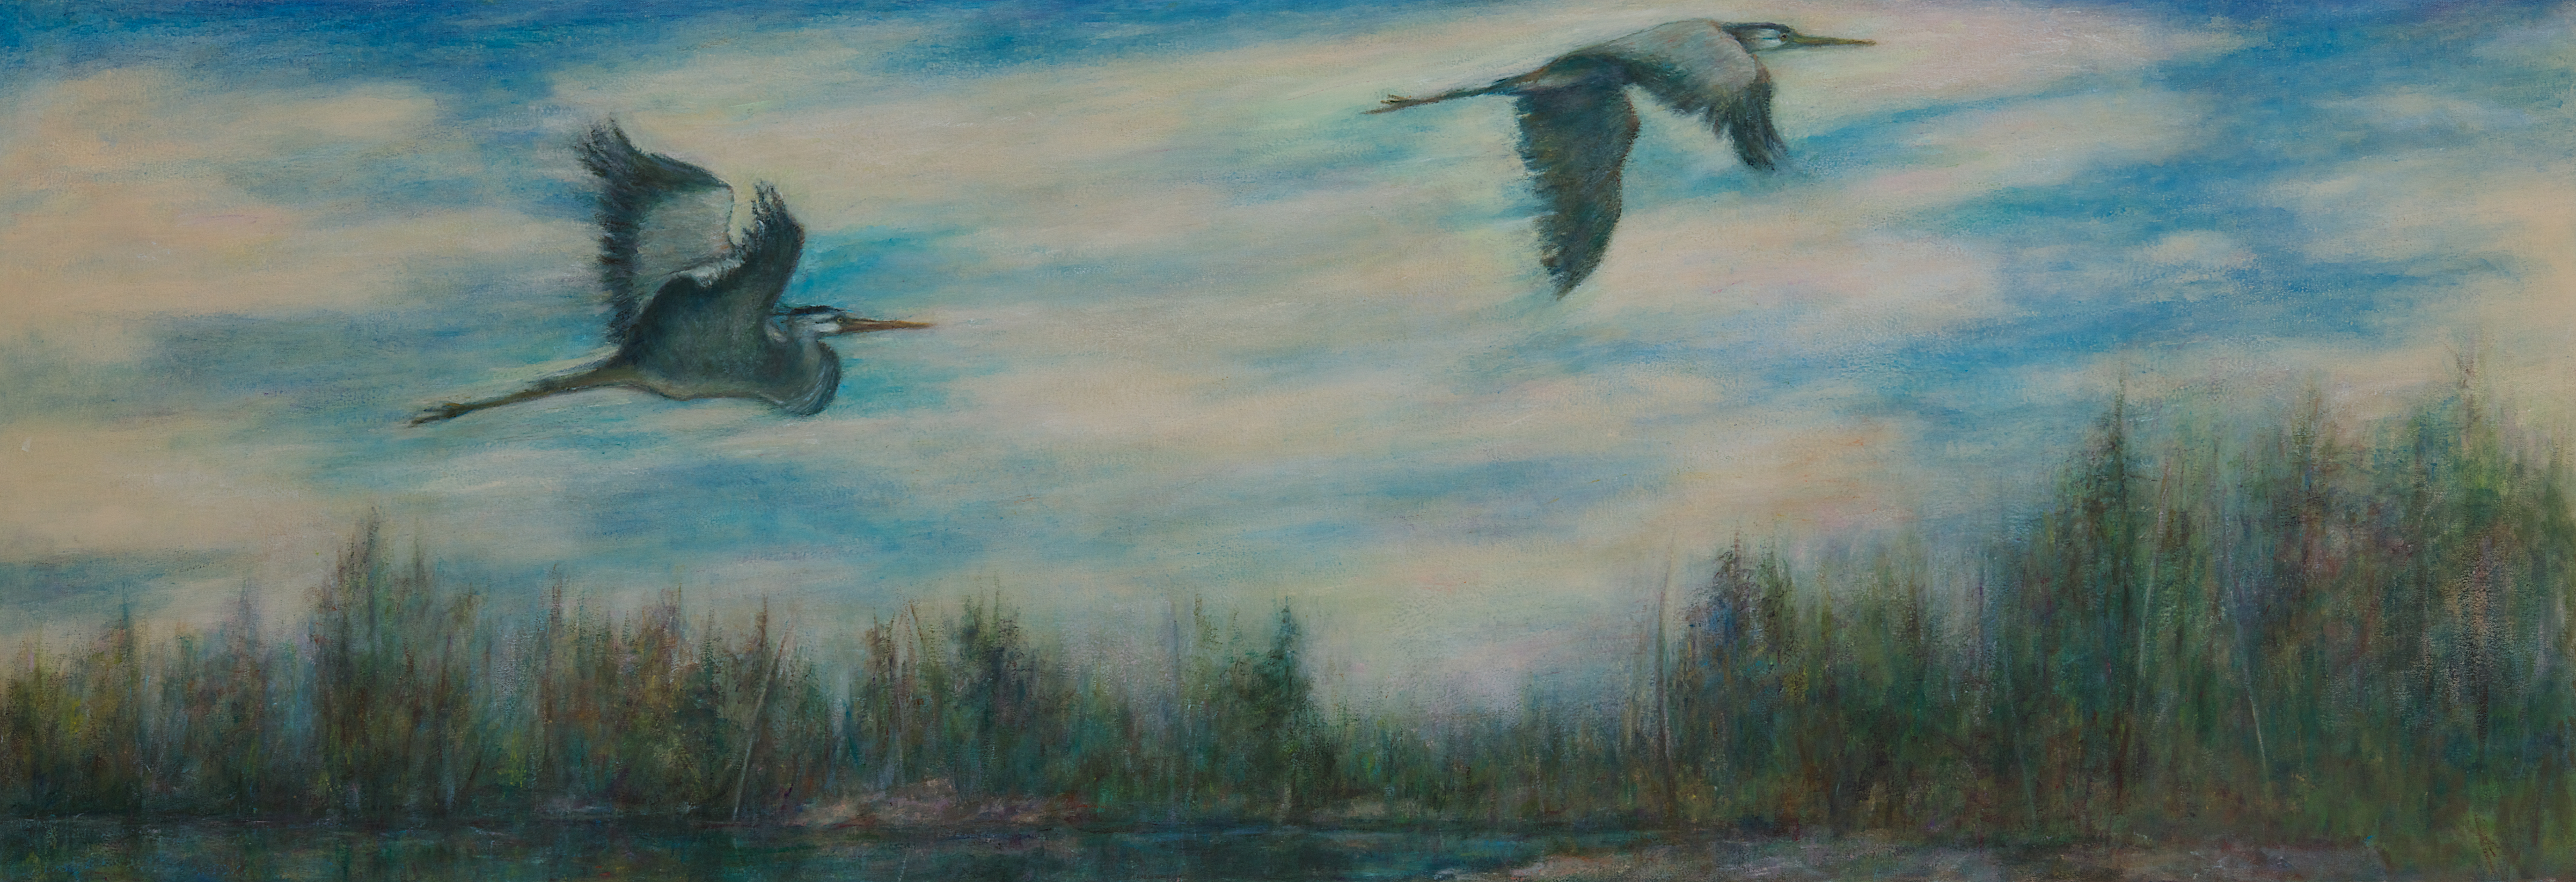 Herons Over the Landscape, oil, wax on canvas, 24 x 69 in